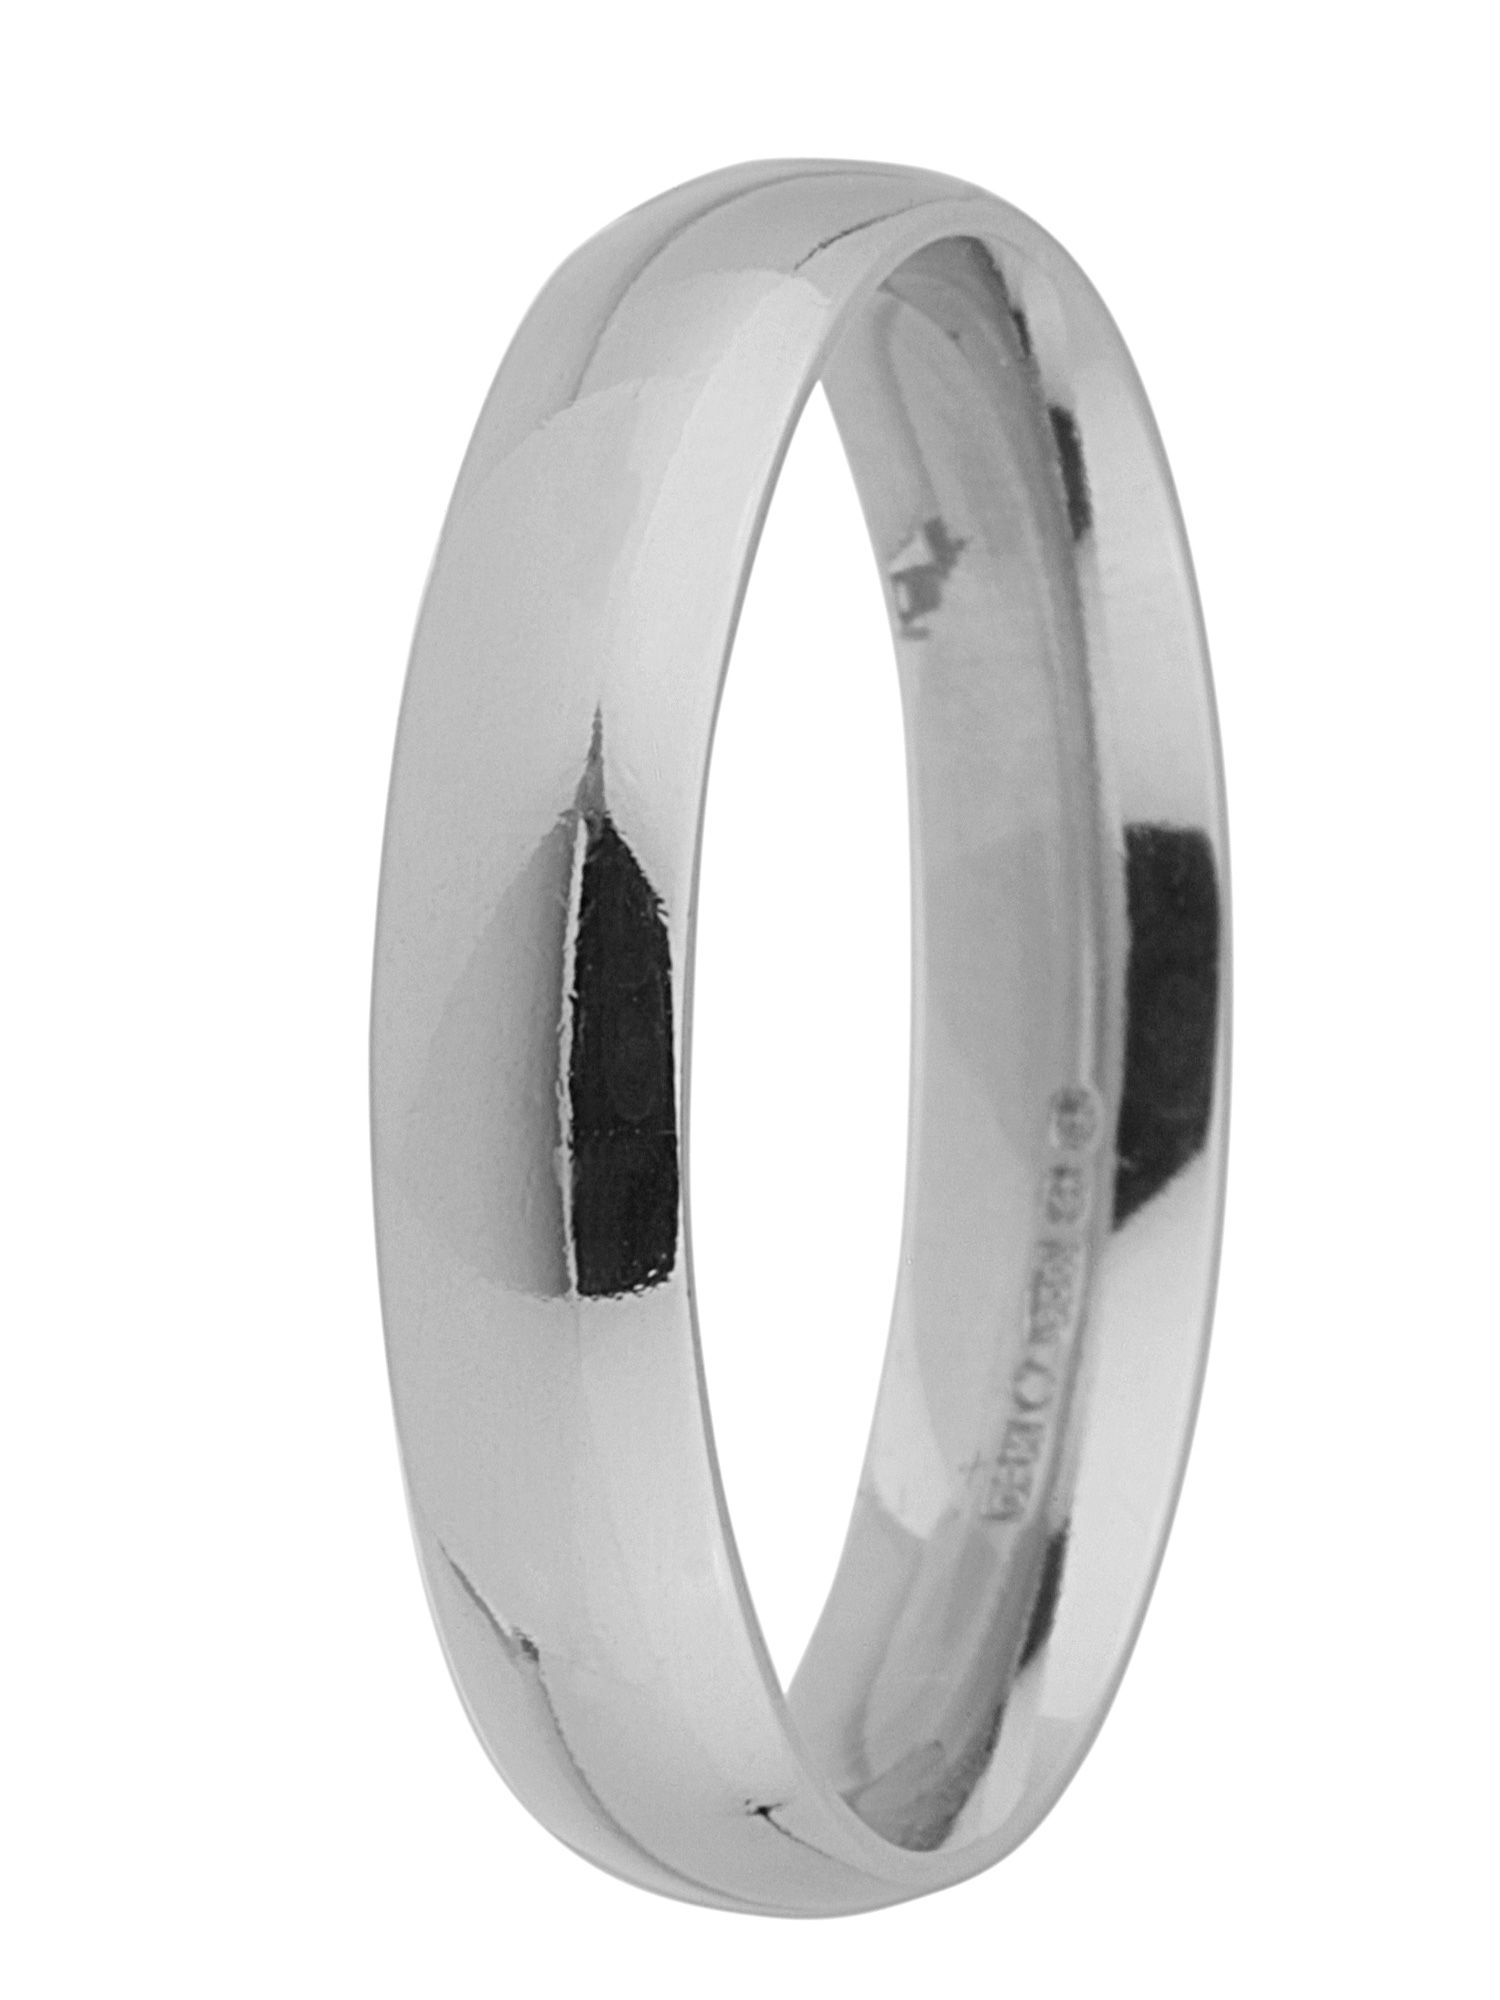 Brides platinum 4mm court wedding ring - Silver